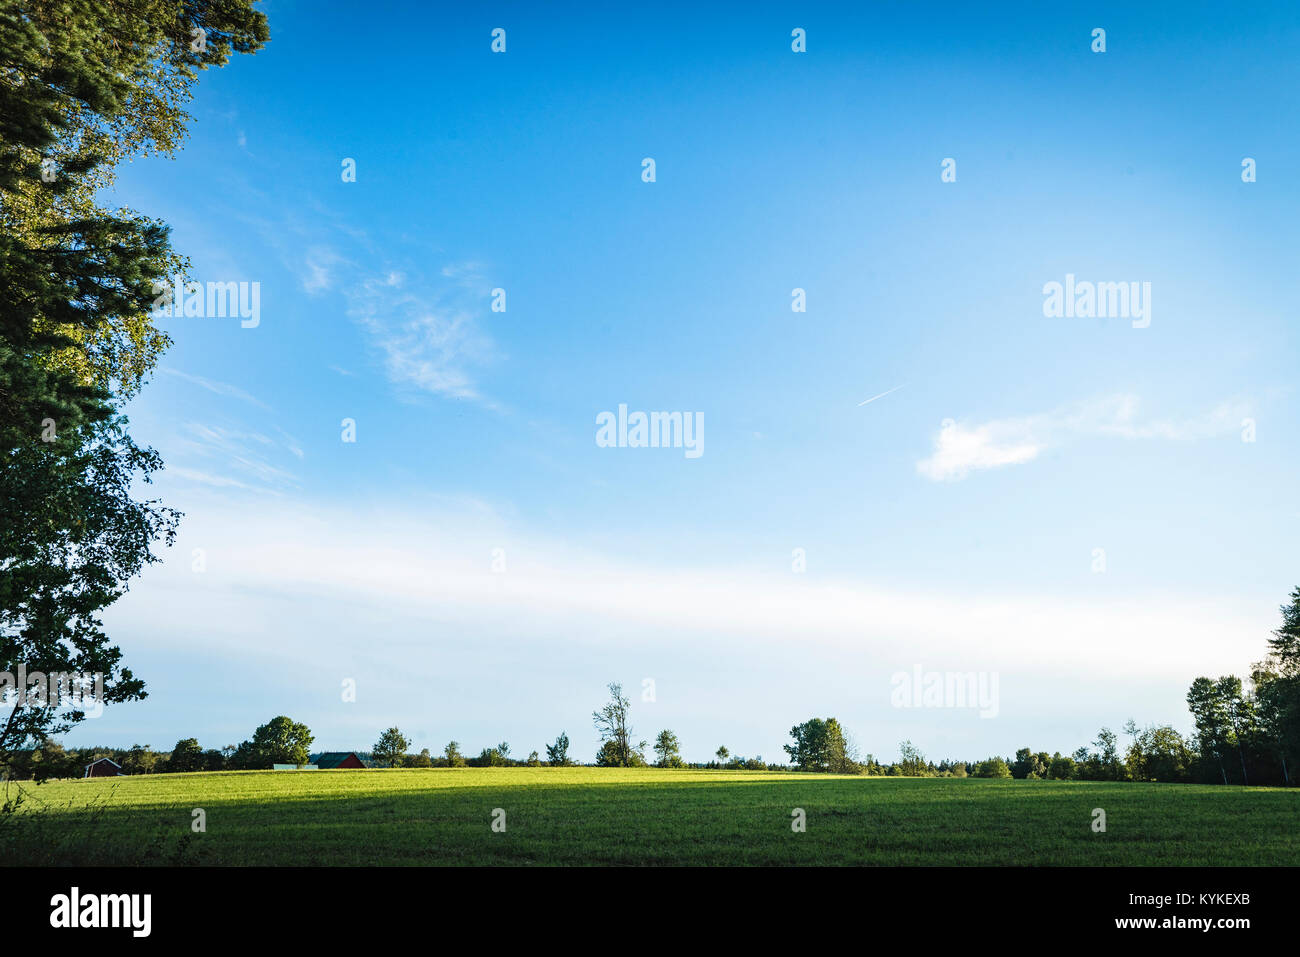 Green field under a blue sky in the spring with trees in the background - Stock Image